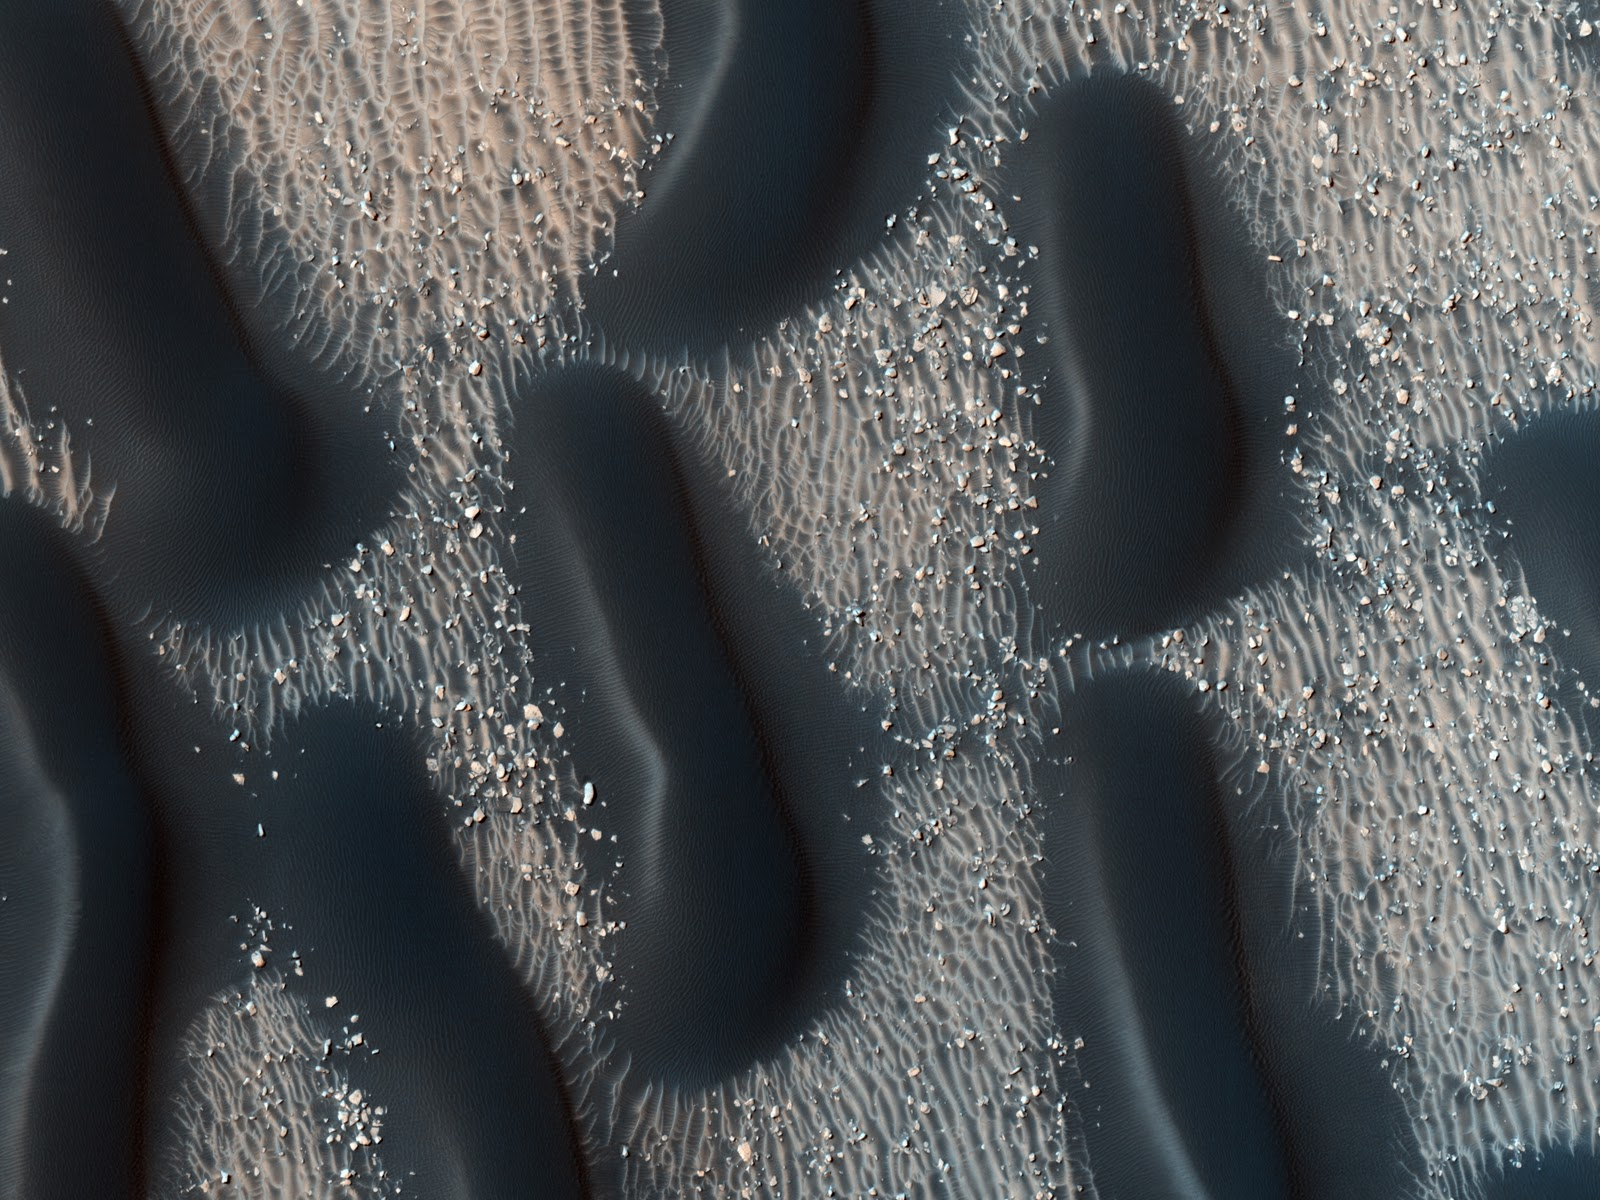 Proctor Crater Dune Field by HiRise